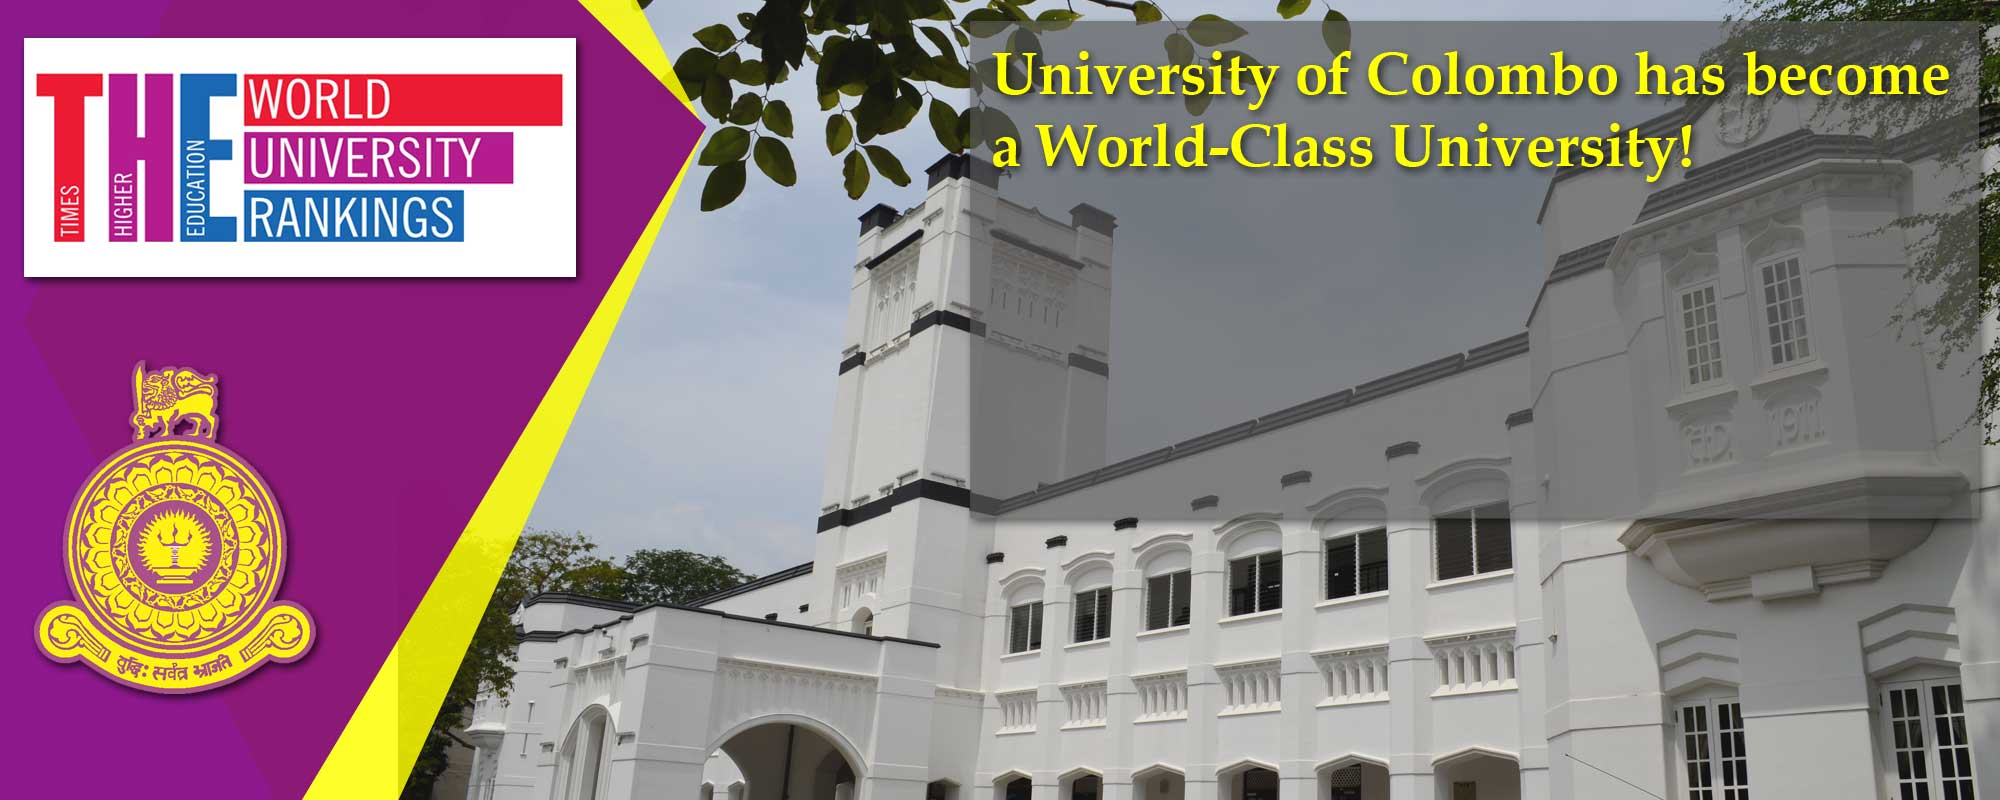 University of Colombo has become a World-Class University!